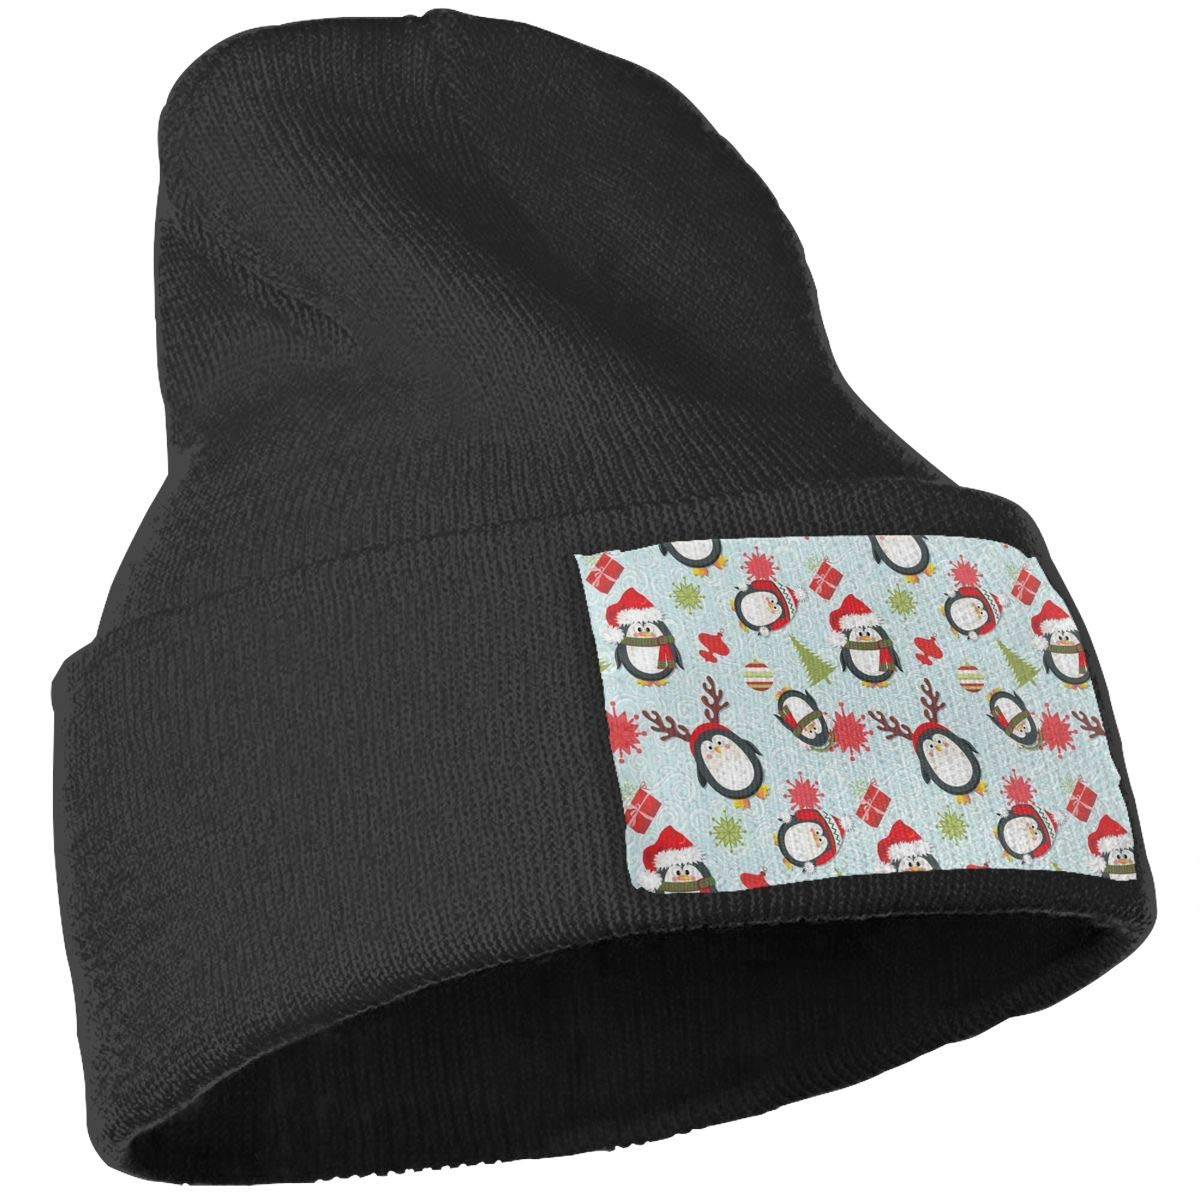 JimHappy Holiday Penguins Christmas Hat for Men and Women Winter Warm Hats Knit Slouchy Thick Skull Cap Black